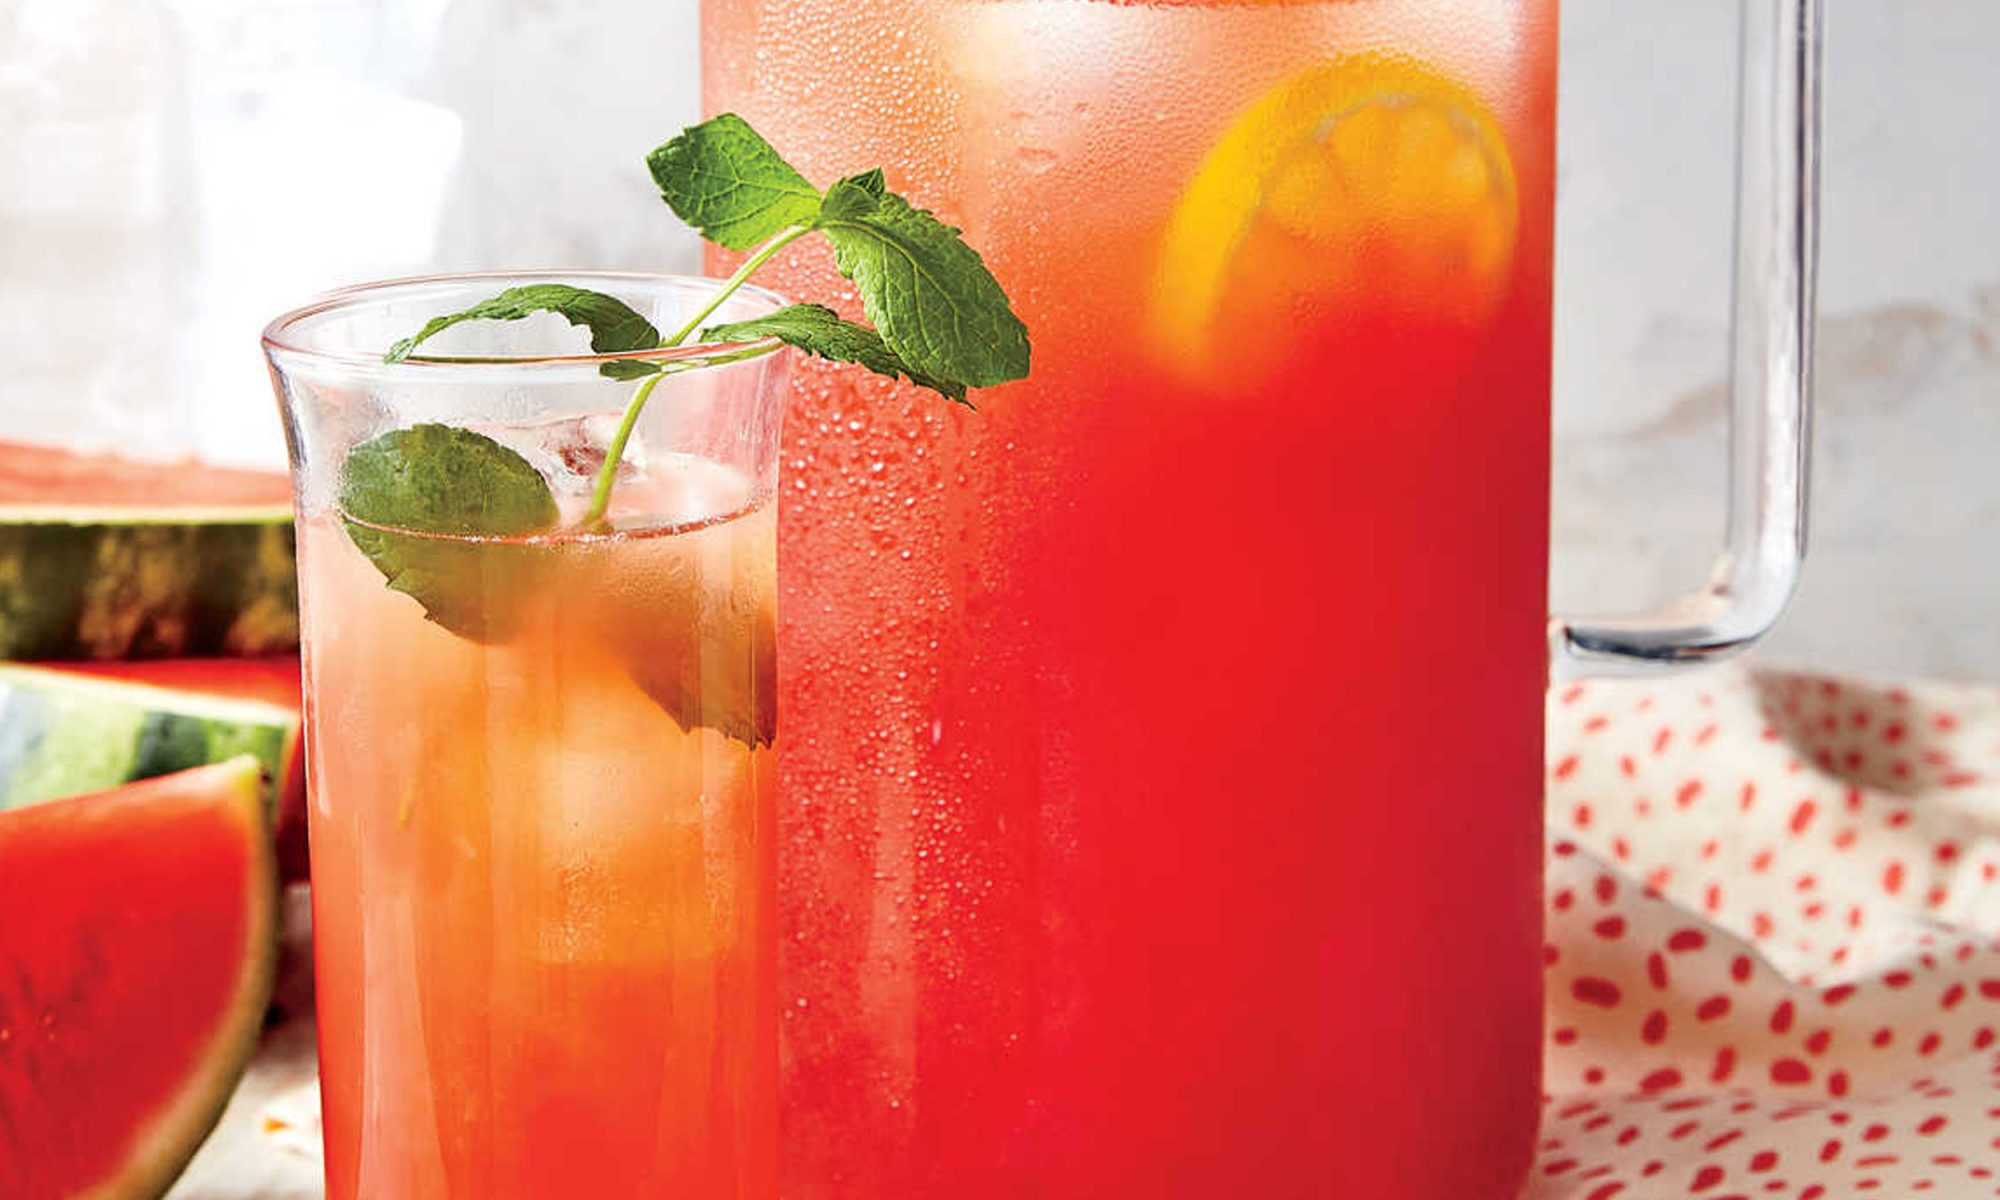 EC: This Spiked Watermelon Lemonade Recipe Will Save You from the Heat